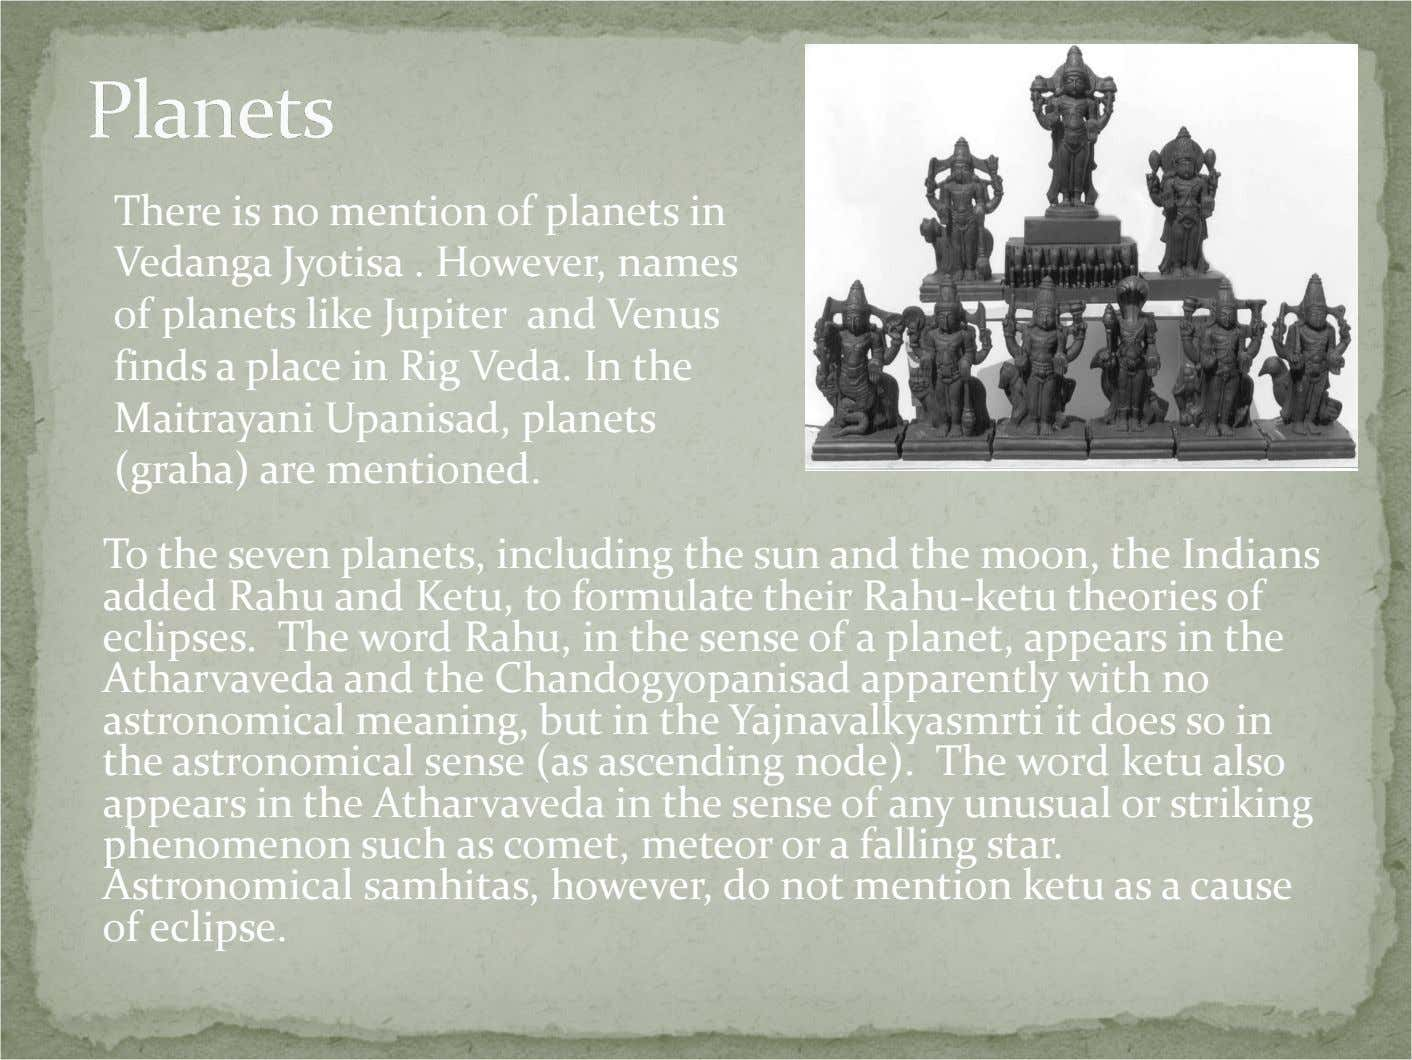 There is no mention of planets in Vedanga Jyotisa . However, names of planets like